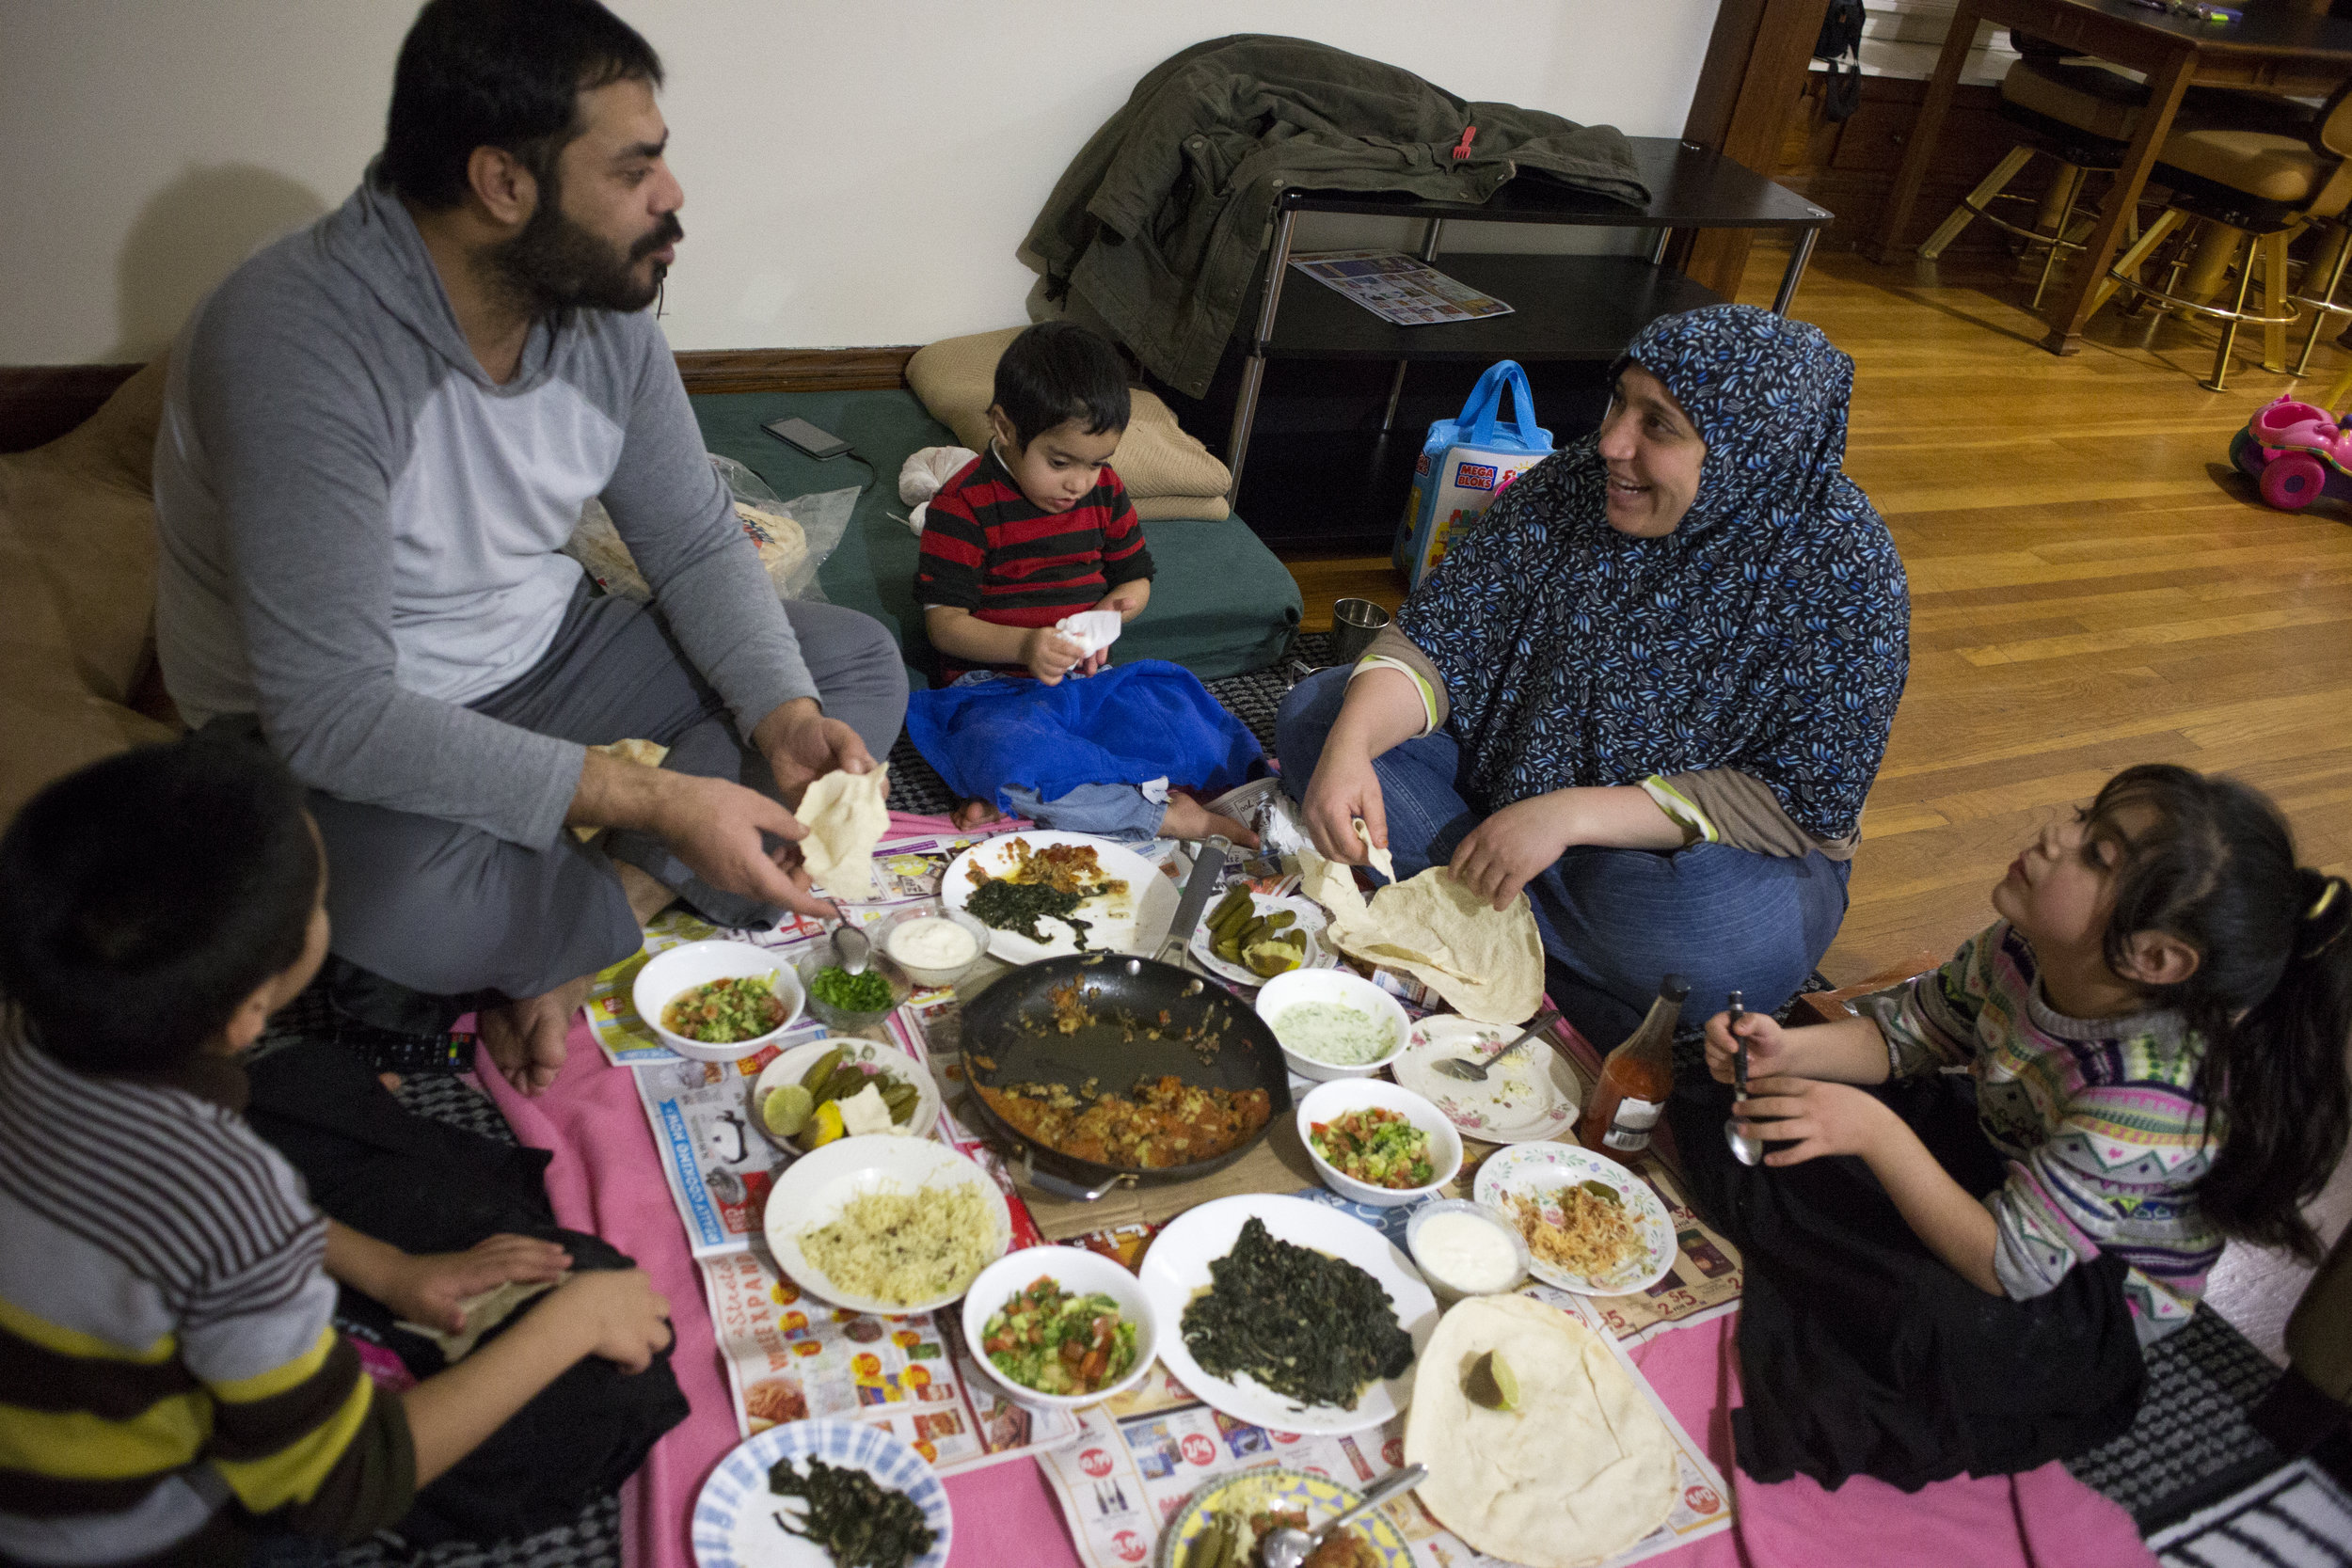 The family enjoys a homecooked meal after the end of a long day.